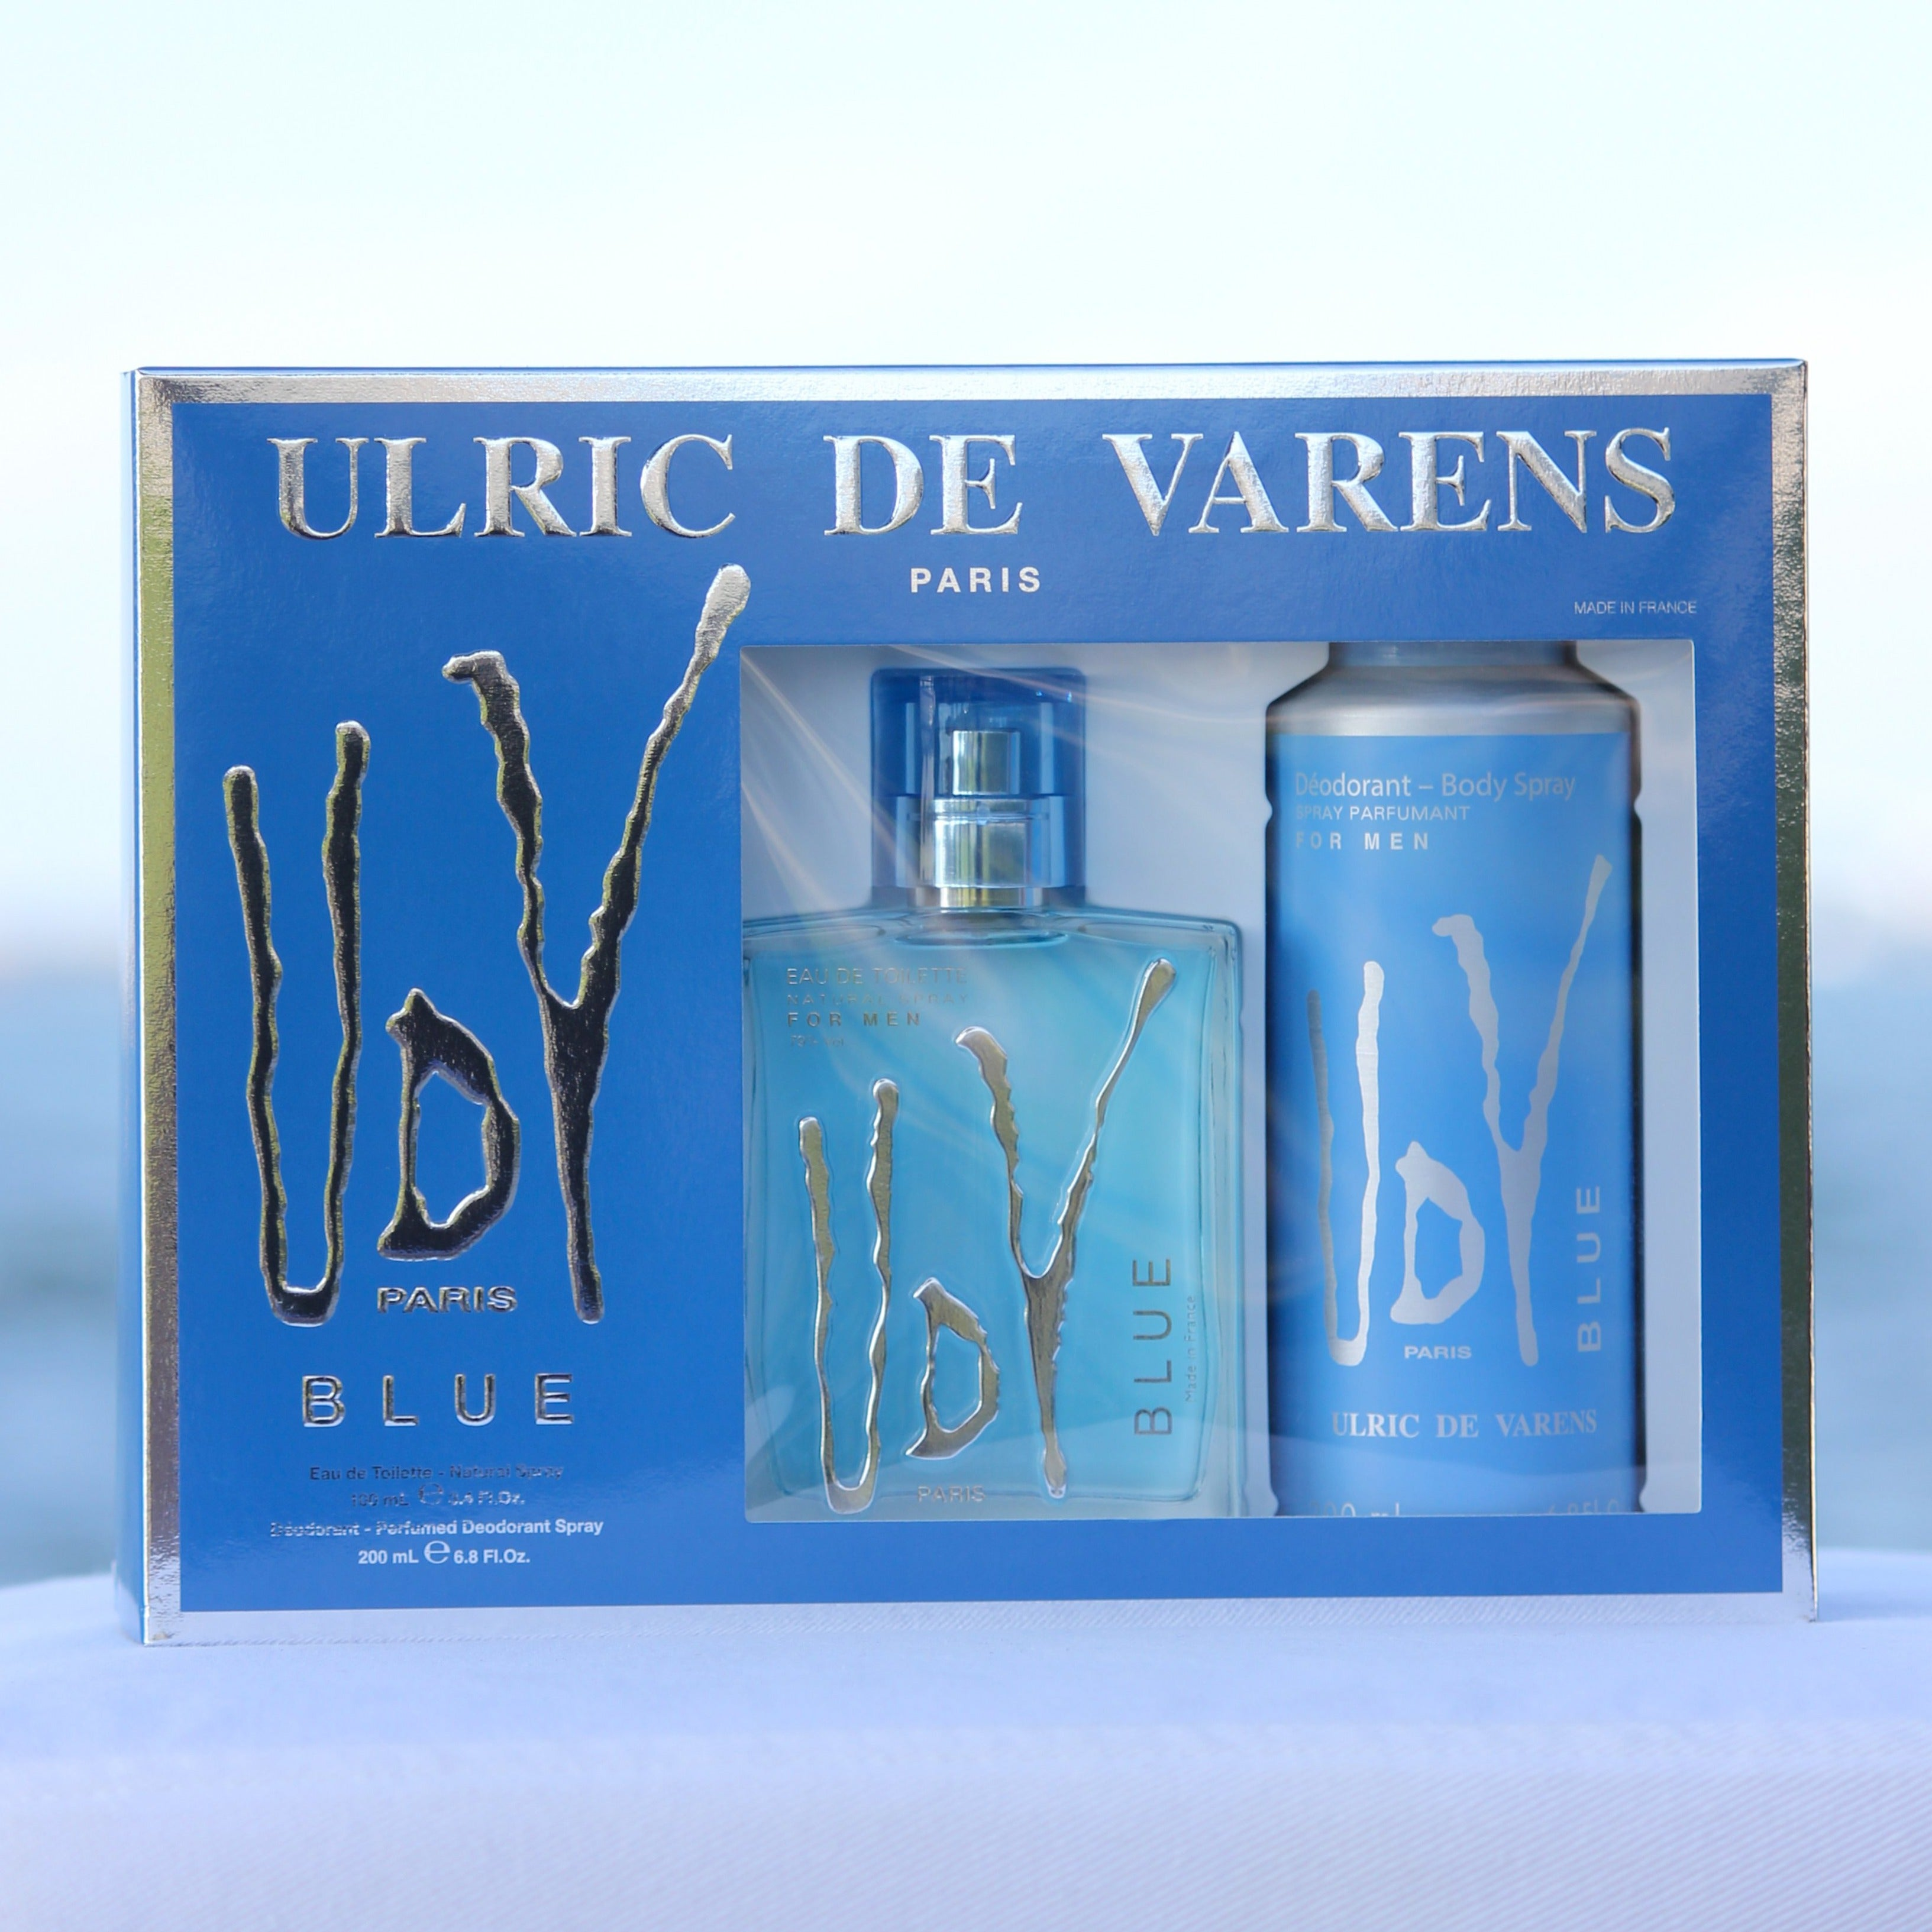 Ulric De Varens UDV Blue Gift Set men's perfume 3.4 EDT and deodorant 6.8 oz in front of beach